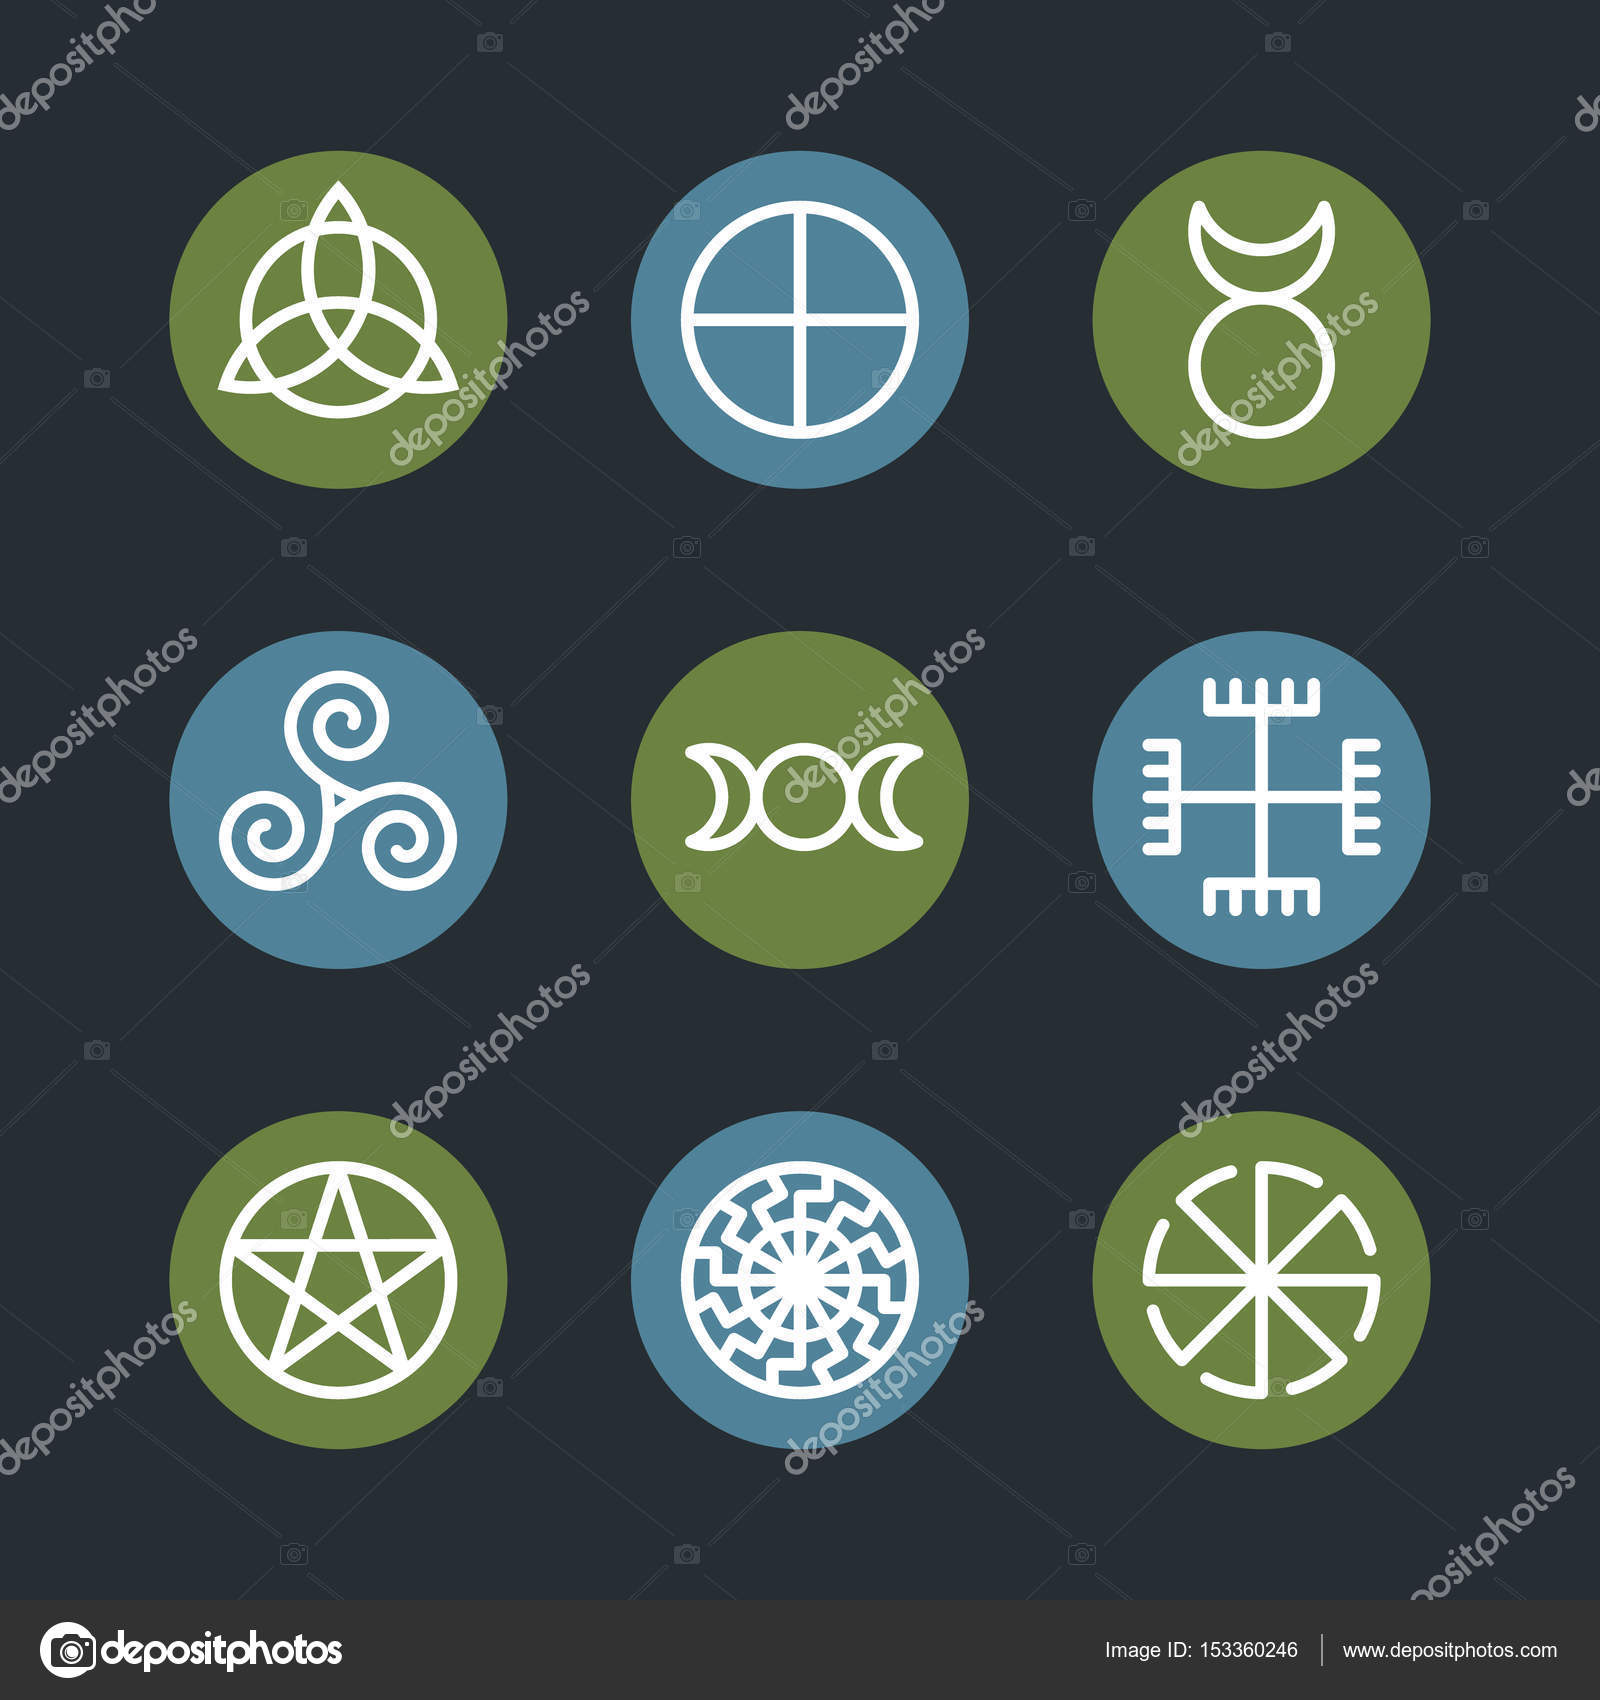 Pagan ancient symbols mystery sacred icons illustration stock pagan ancient symbols mystery sacred icons illustration stock vector buycottarizona